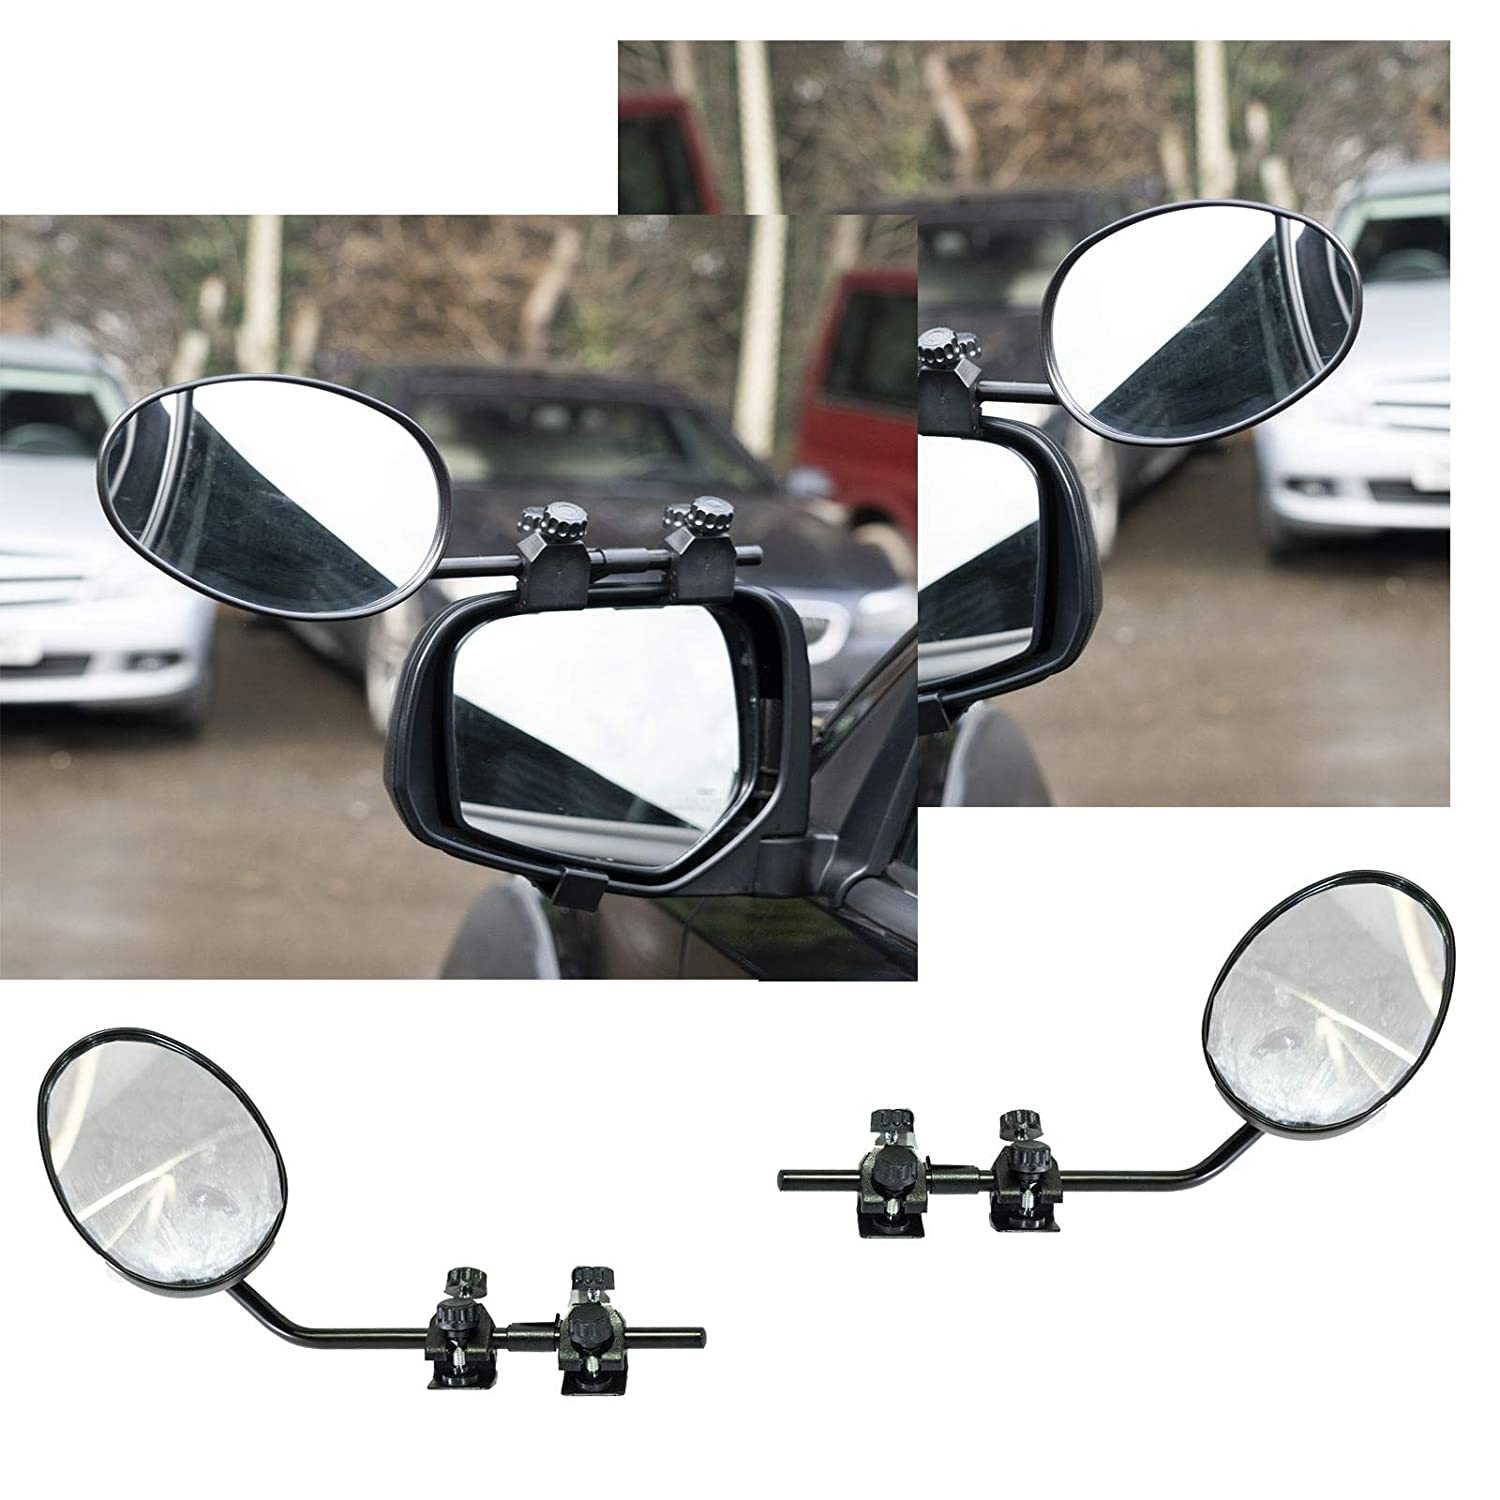 UKB4C Pair of Convex Caravan Car Extension Towing Mirrors fits 3 4 5 6 7 Series X3 X4 X5 X6 X7